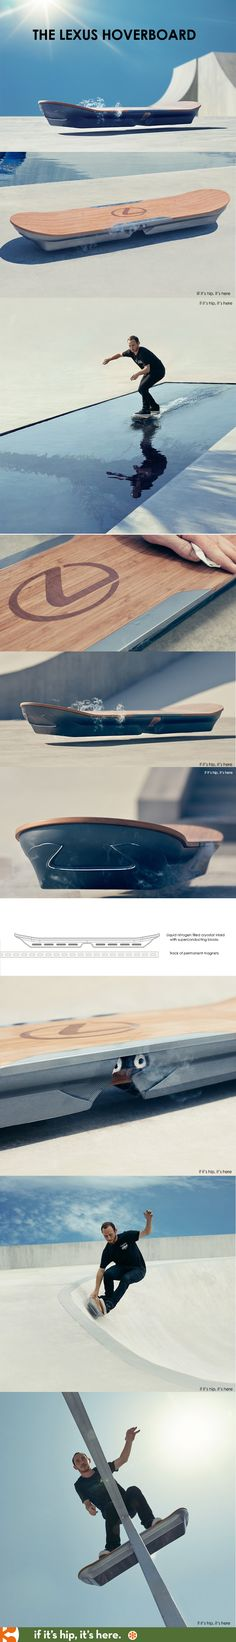 Gagner Un Hoverboard! Everything You Need To Know About The Lexus Hoverboard www.ifitshipitshe...http://pinterest.com/pin/466896686347907568/